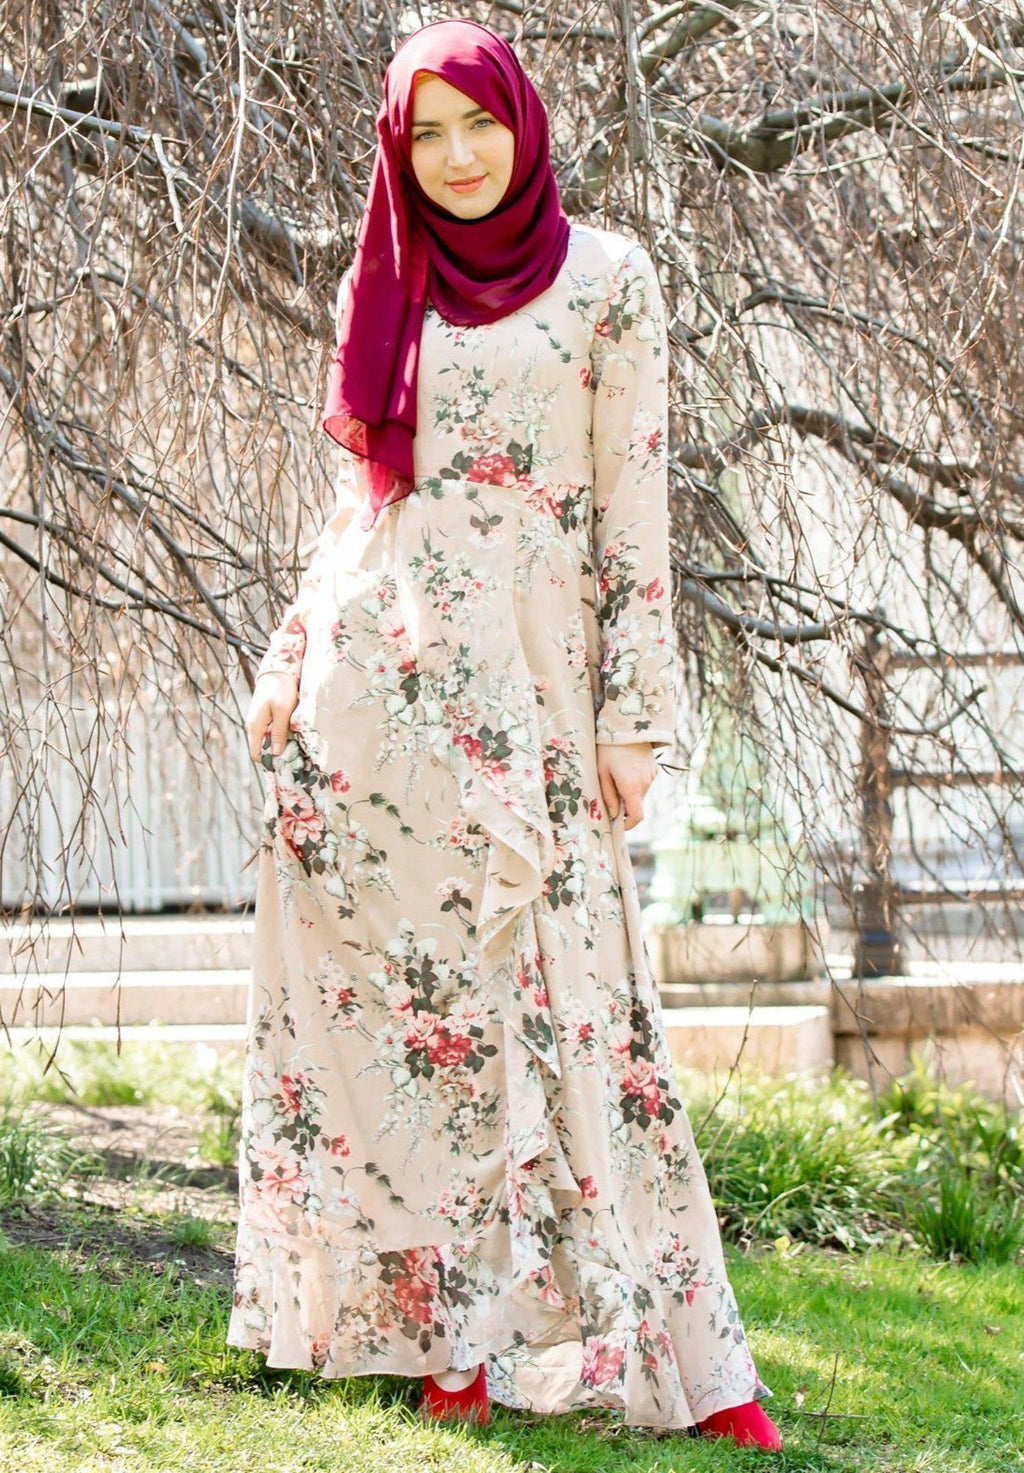 Blush Pink Ruffle Floral Maxi Dress With Sleeves-PREORDER - Abaya, Hijabs, Jilbabs, on sale now at UrbanModesty.com